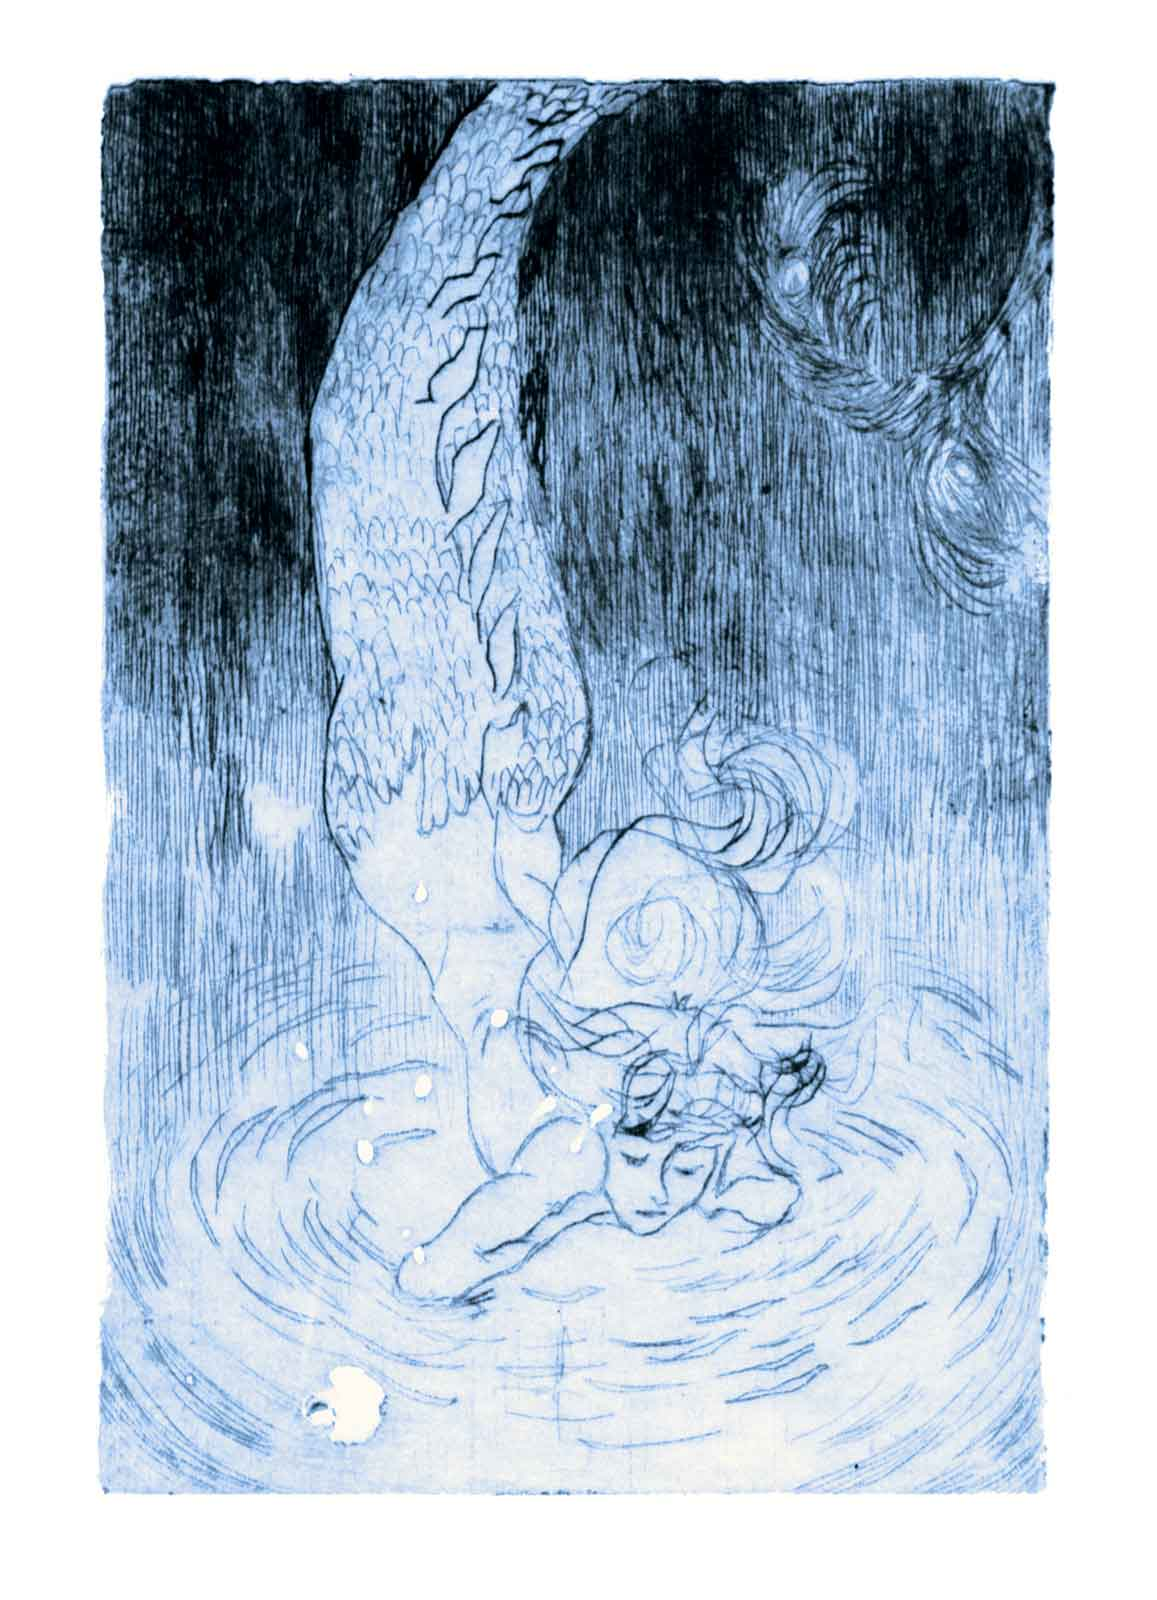 A mermaid is hovering above the under-surface of the ocean.